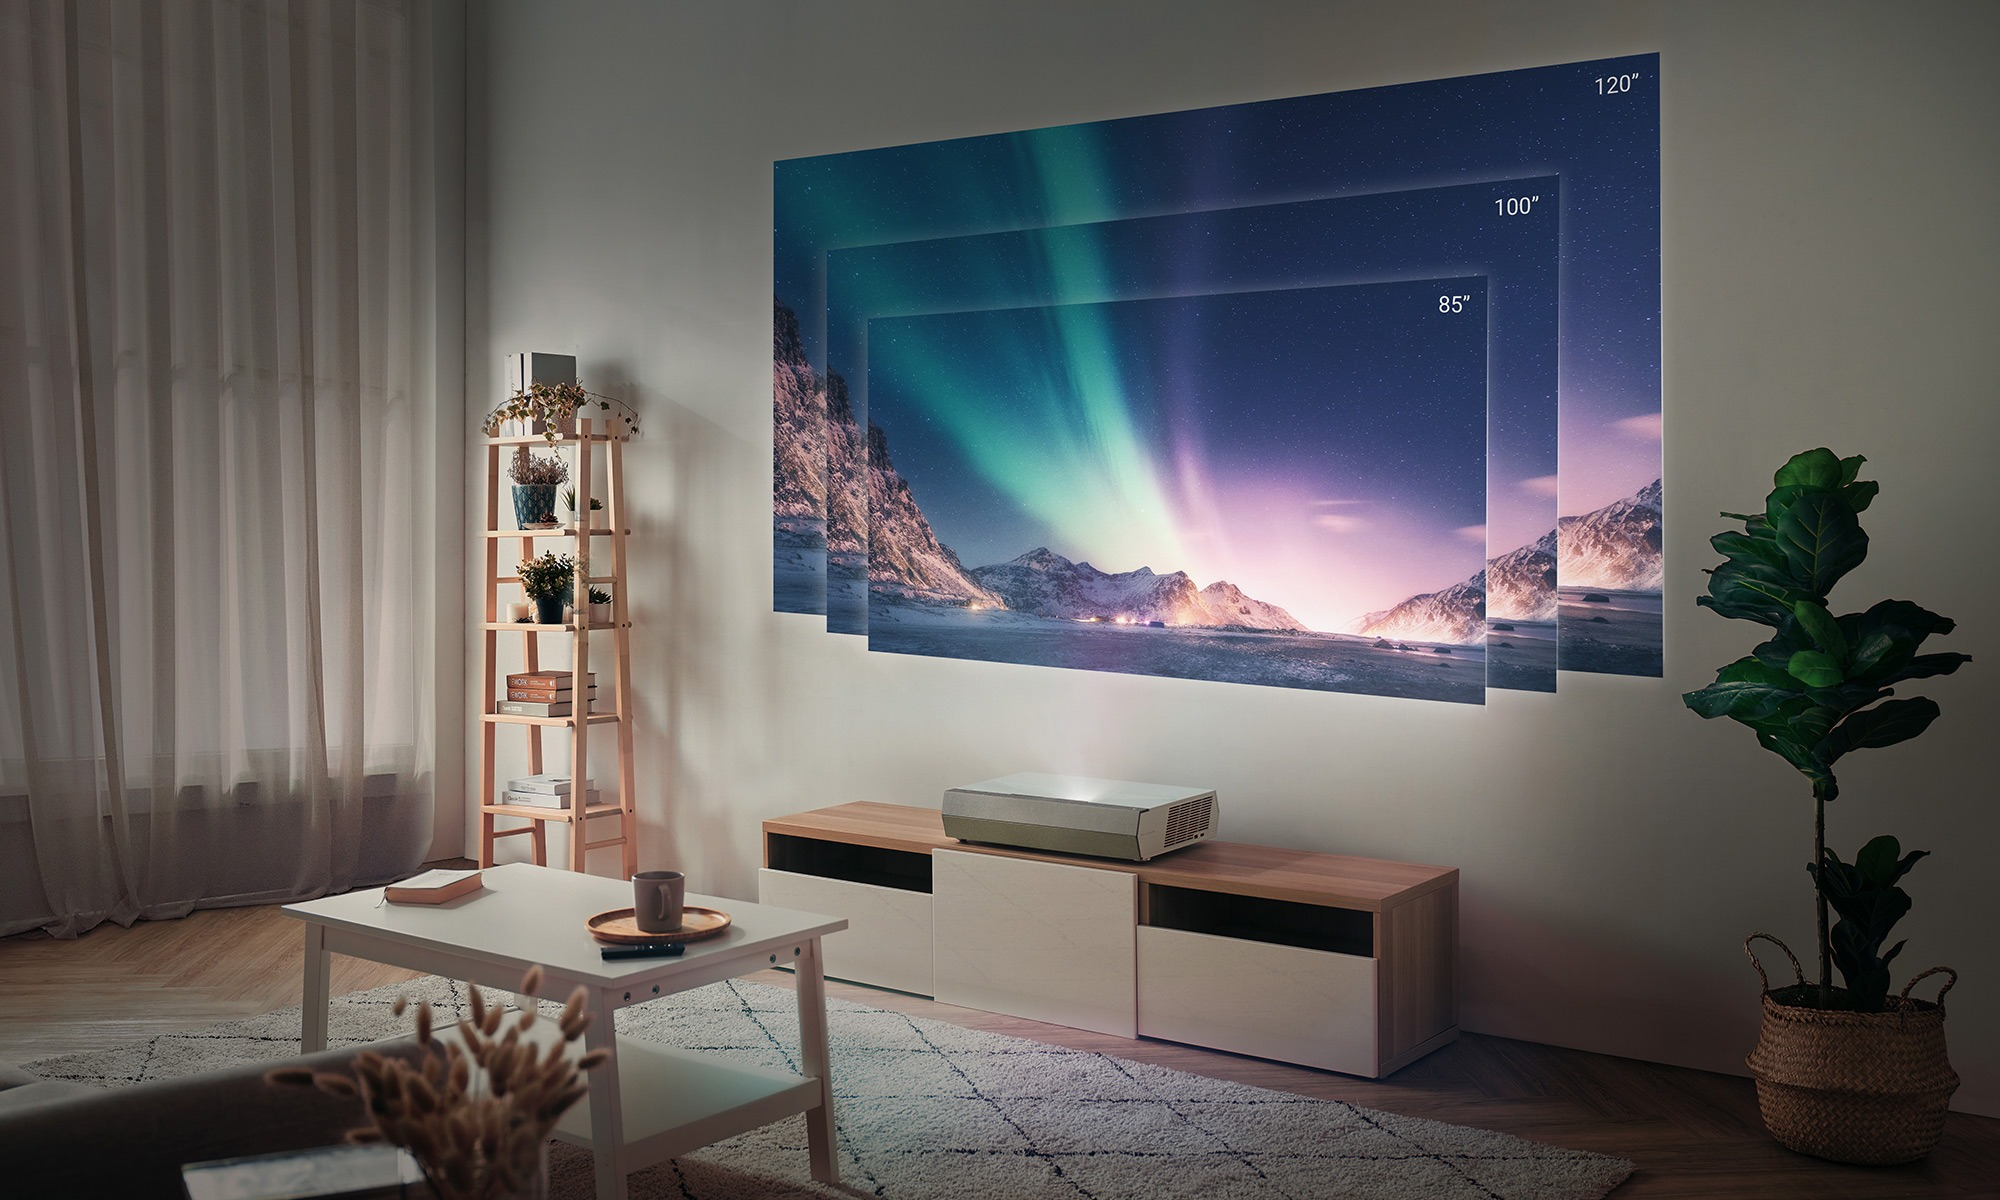 Are laser projectors worth it, and which ones should you buy in 2021?